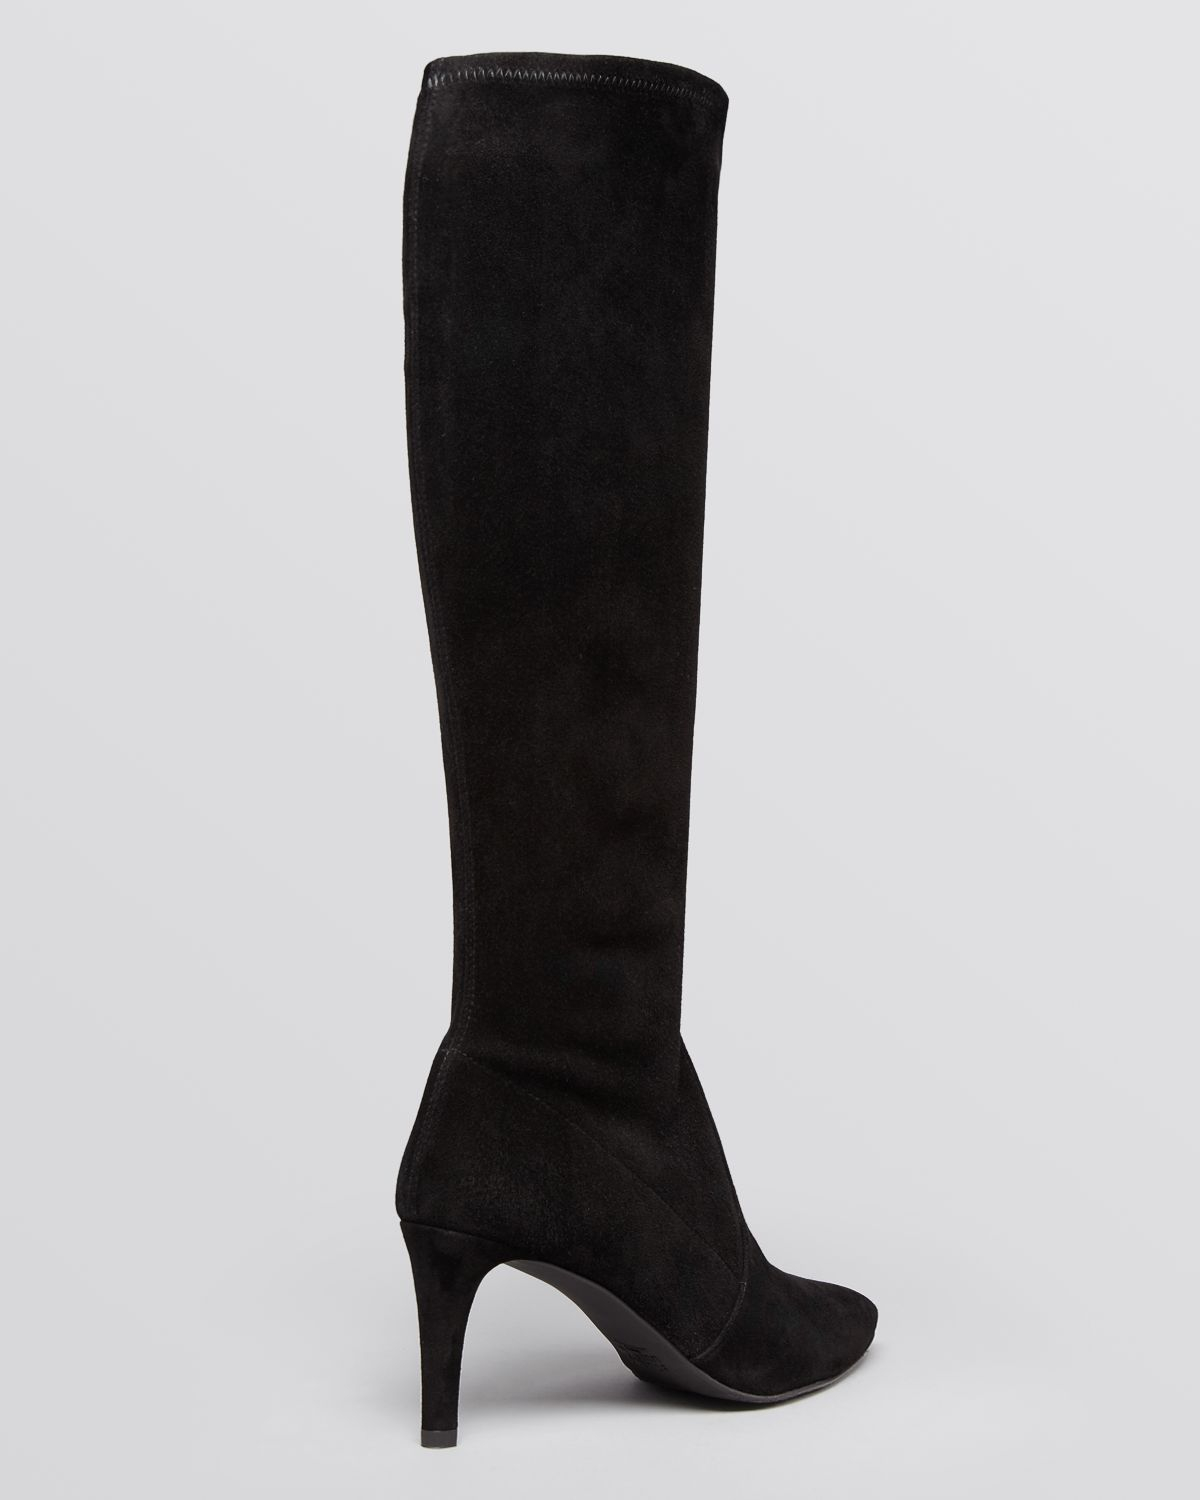 Stuart weitzman Thighland Suede Over-the-knee Boots in Black   Lyst